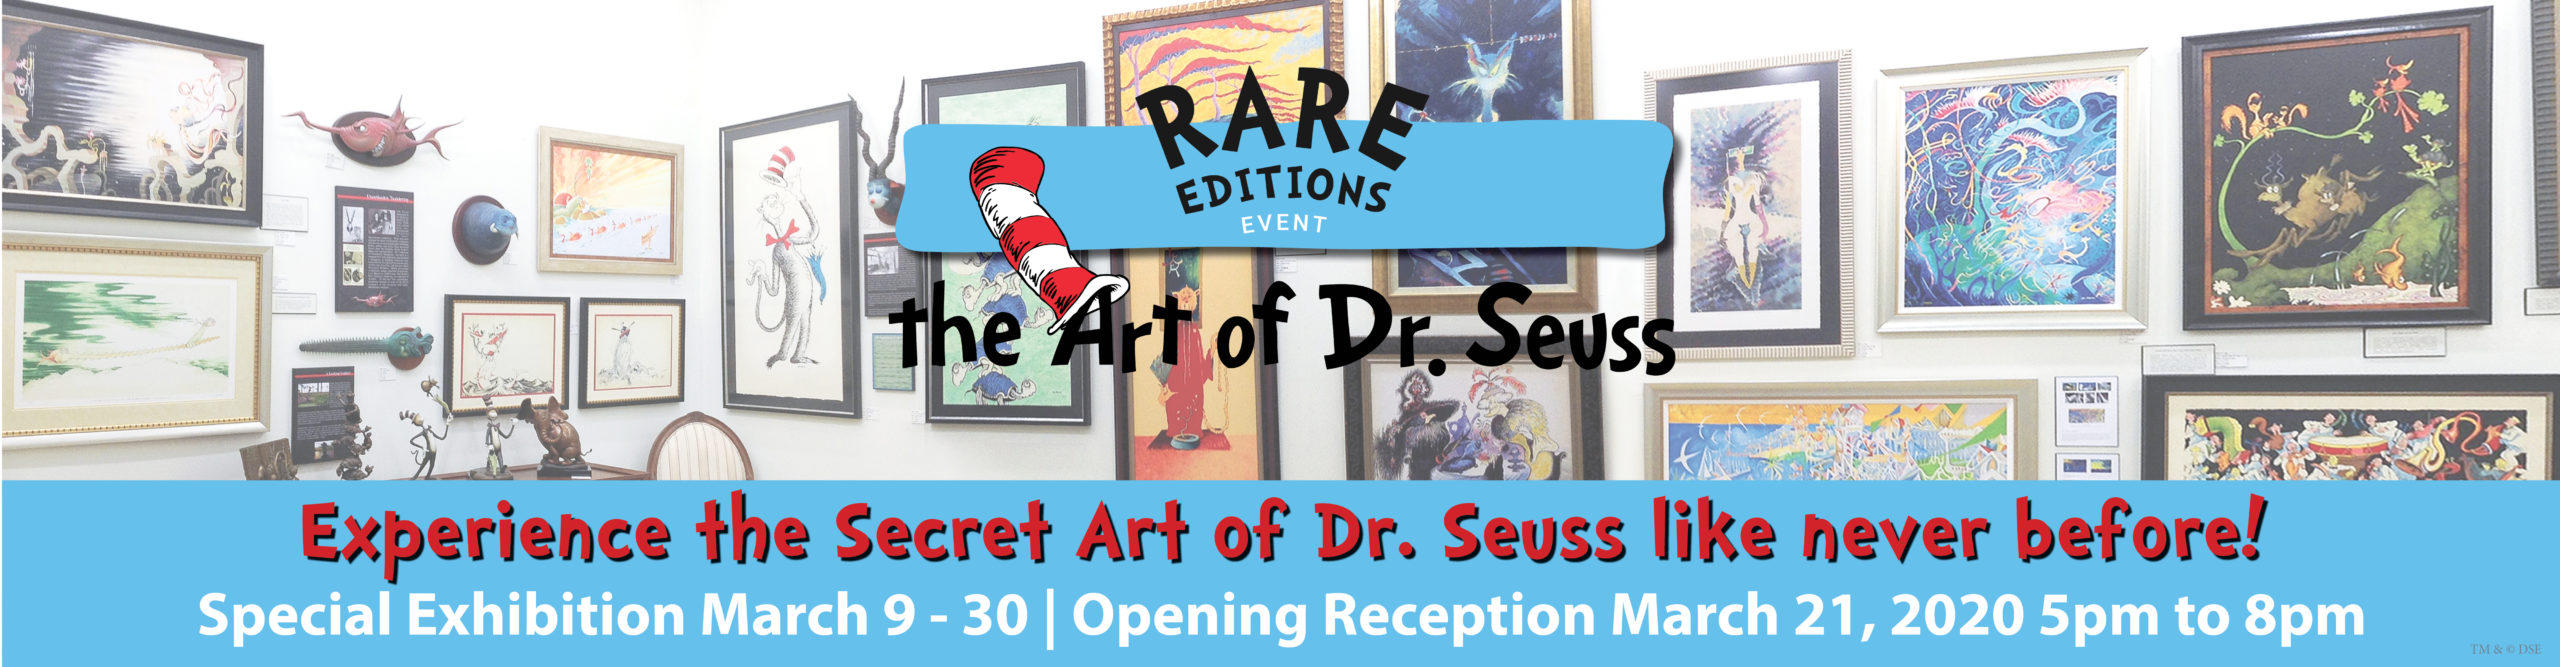 "Dr. Seuss Rare Editions Event at Art Leaders Gallery, voted ""Michigan's Best Fine Art Gallery"" is located in the heart of West Bloomfield. This full service fine art gallery is the destination for all your art and custom picture framing needs. Our extensive inventory of art includes styles ranging from contemporary to traditional. The gallery represents international, national, and emerging new talent as well as local Michigan artists."